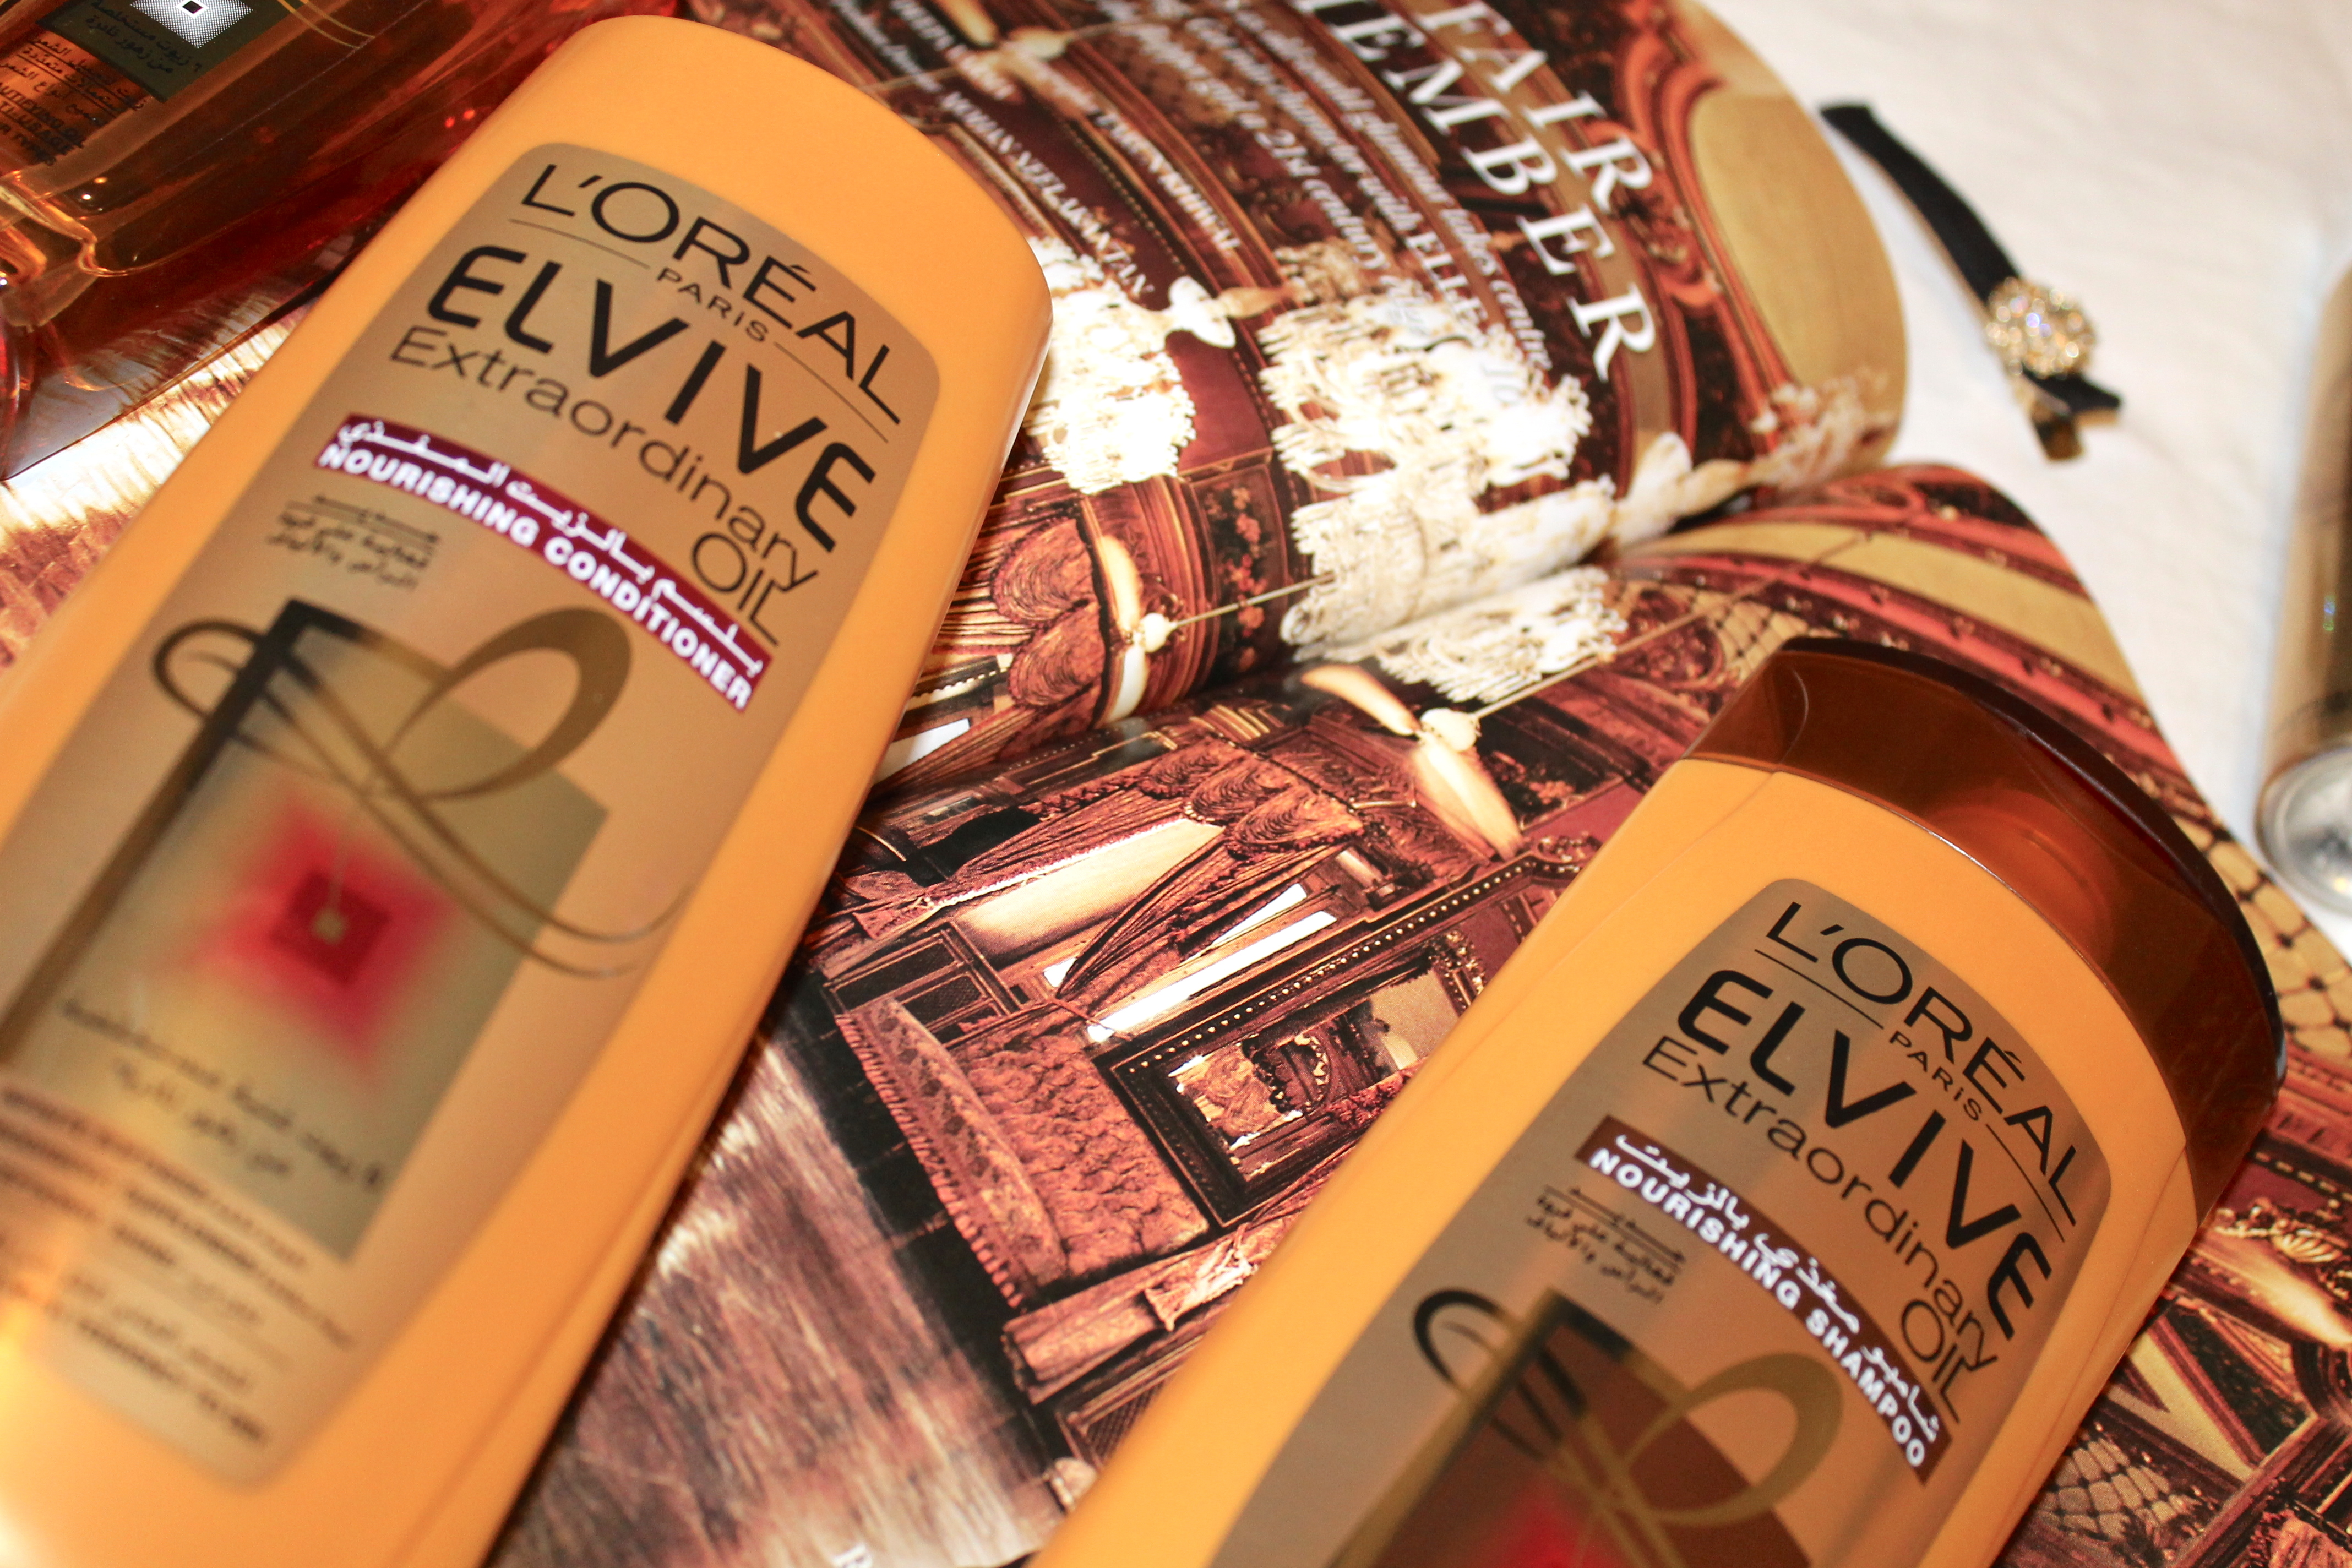 Extraordinary Oil L'oreal Review L'oreal Elvive Extraordinary